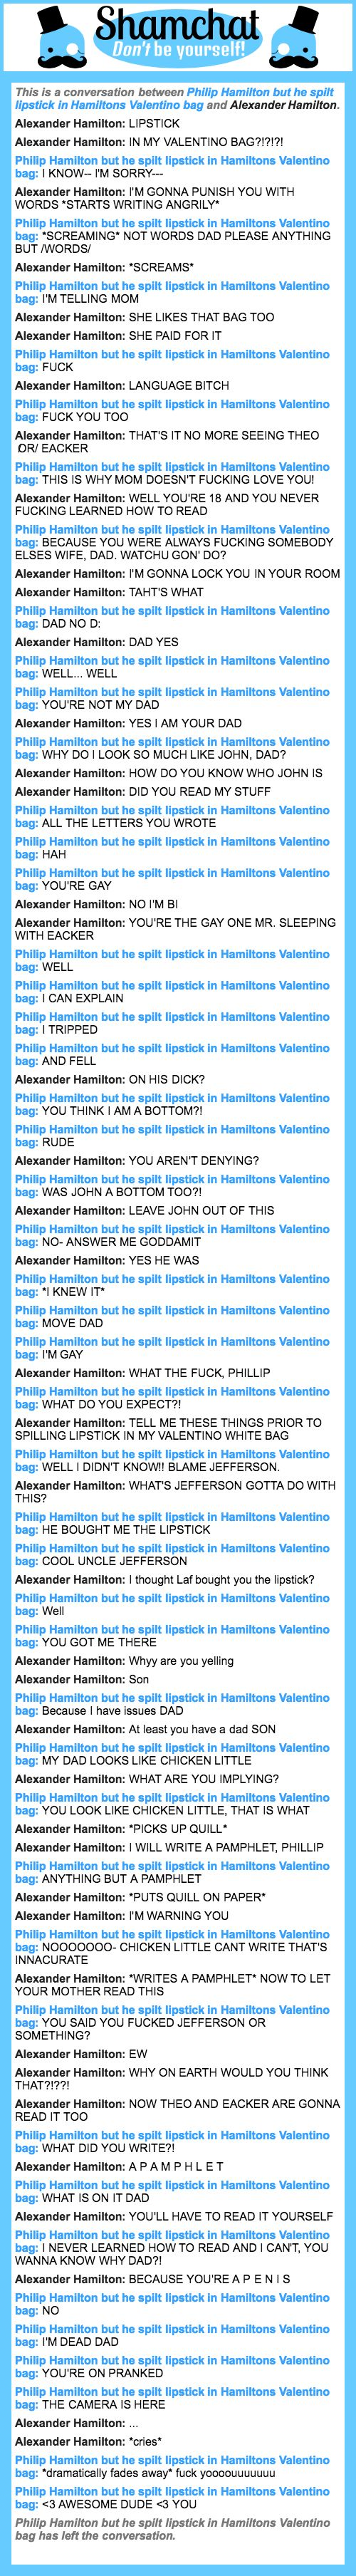 A conversation between Alexander Hamilton and Philip Hamilton but he spilt lipstick in Hamiltons Valentino bag